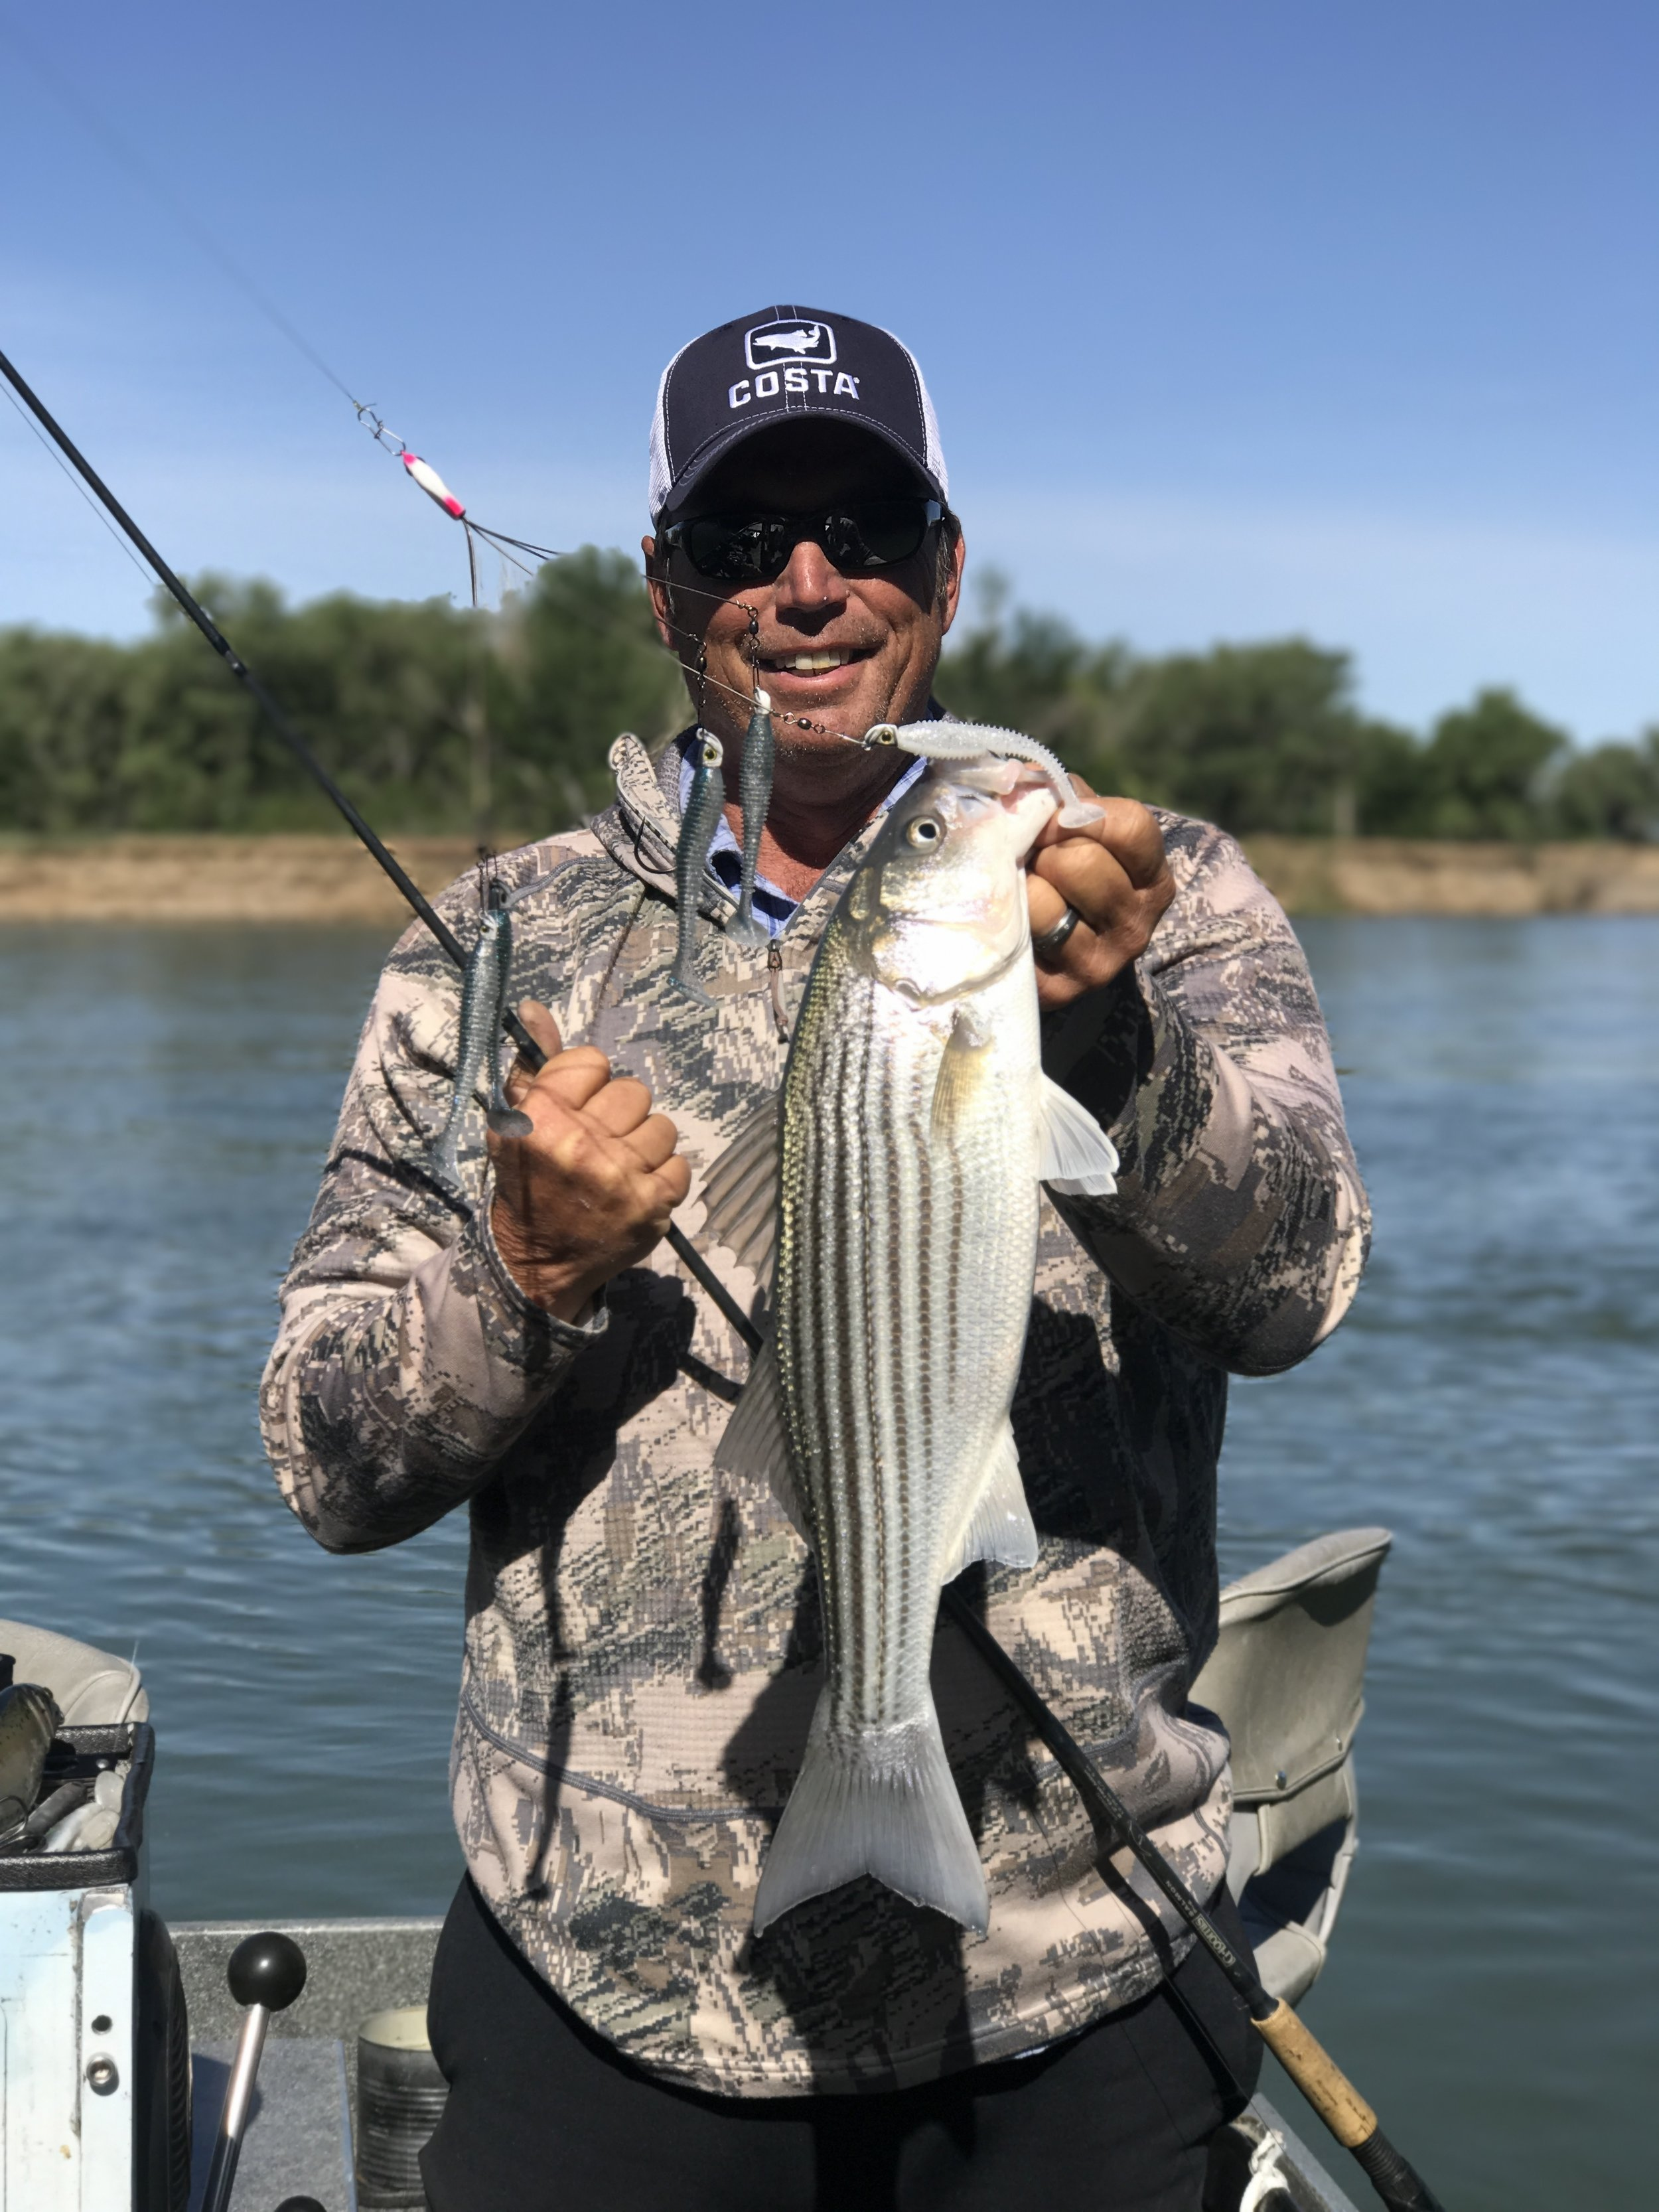 Northern California Striped Bass fishing guide Dave Jacobs  sacramentofishing.com  holds a chunky post spawn striped bass he caught on the Sacramento River near Woodson Bridge in Corning, Ca on May 18, 2017.